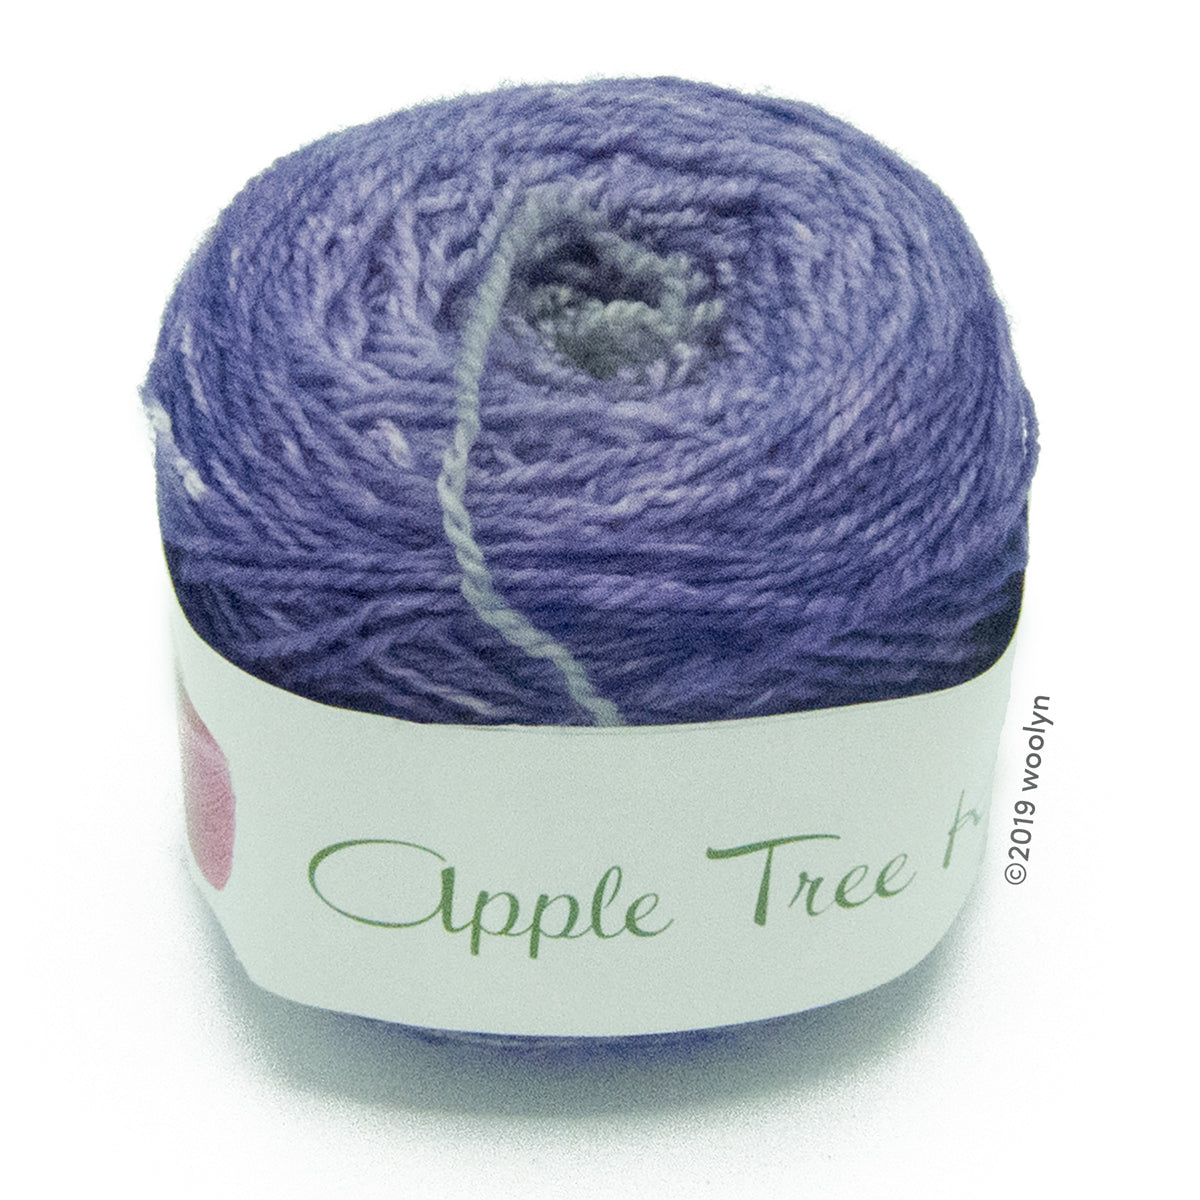 A wound cake of hand dyed fingering weight yarn from Apple Tree Knits..  Yarn is a gradient from light grey to medium purple.